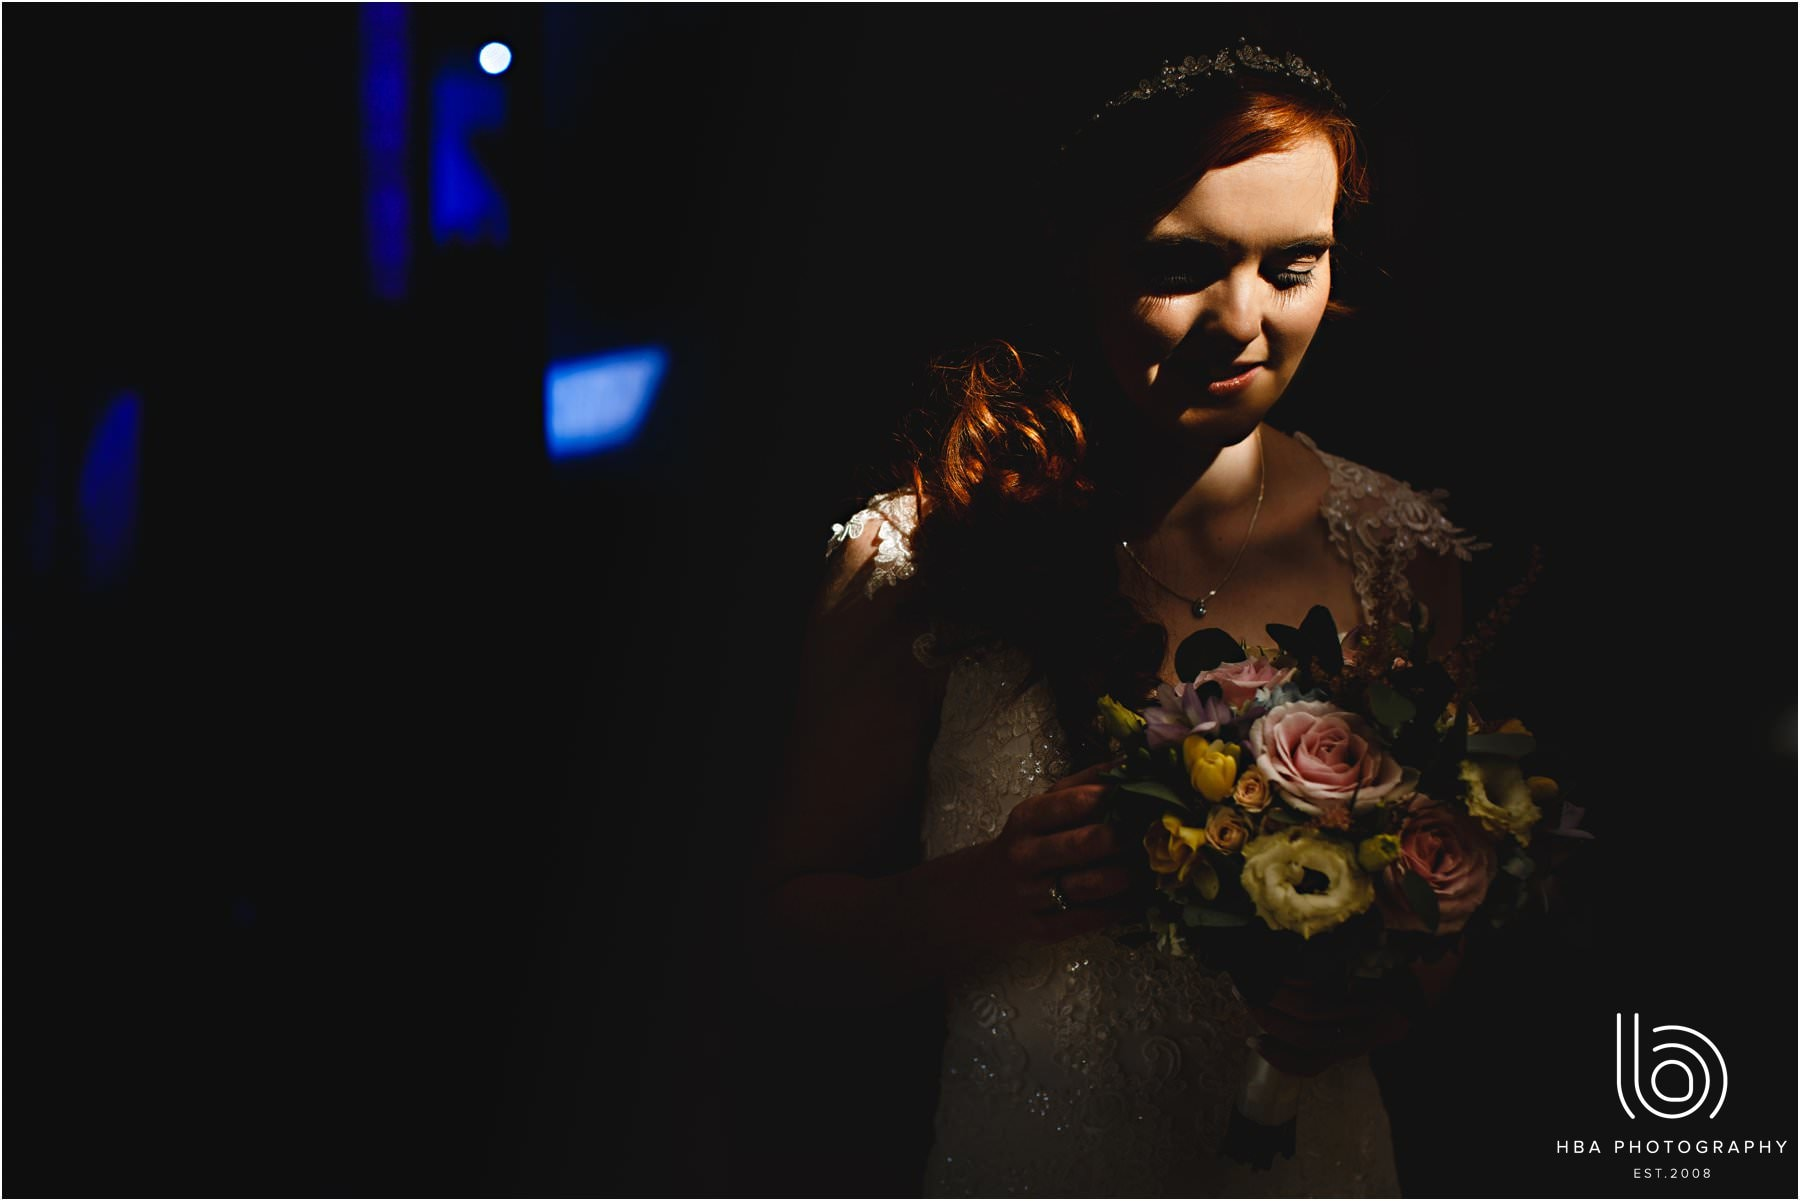 the bride in a shaft of light